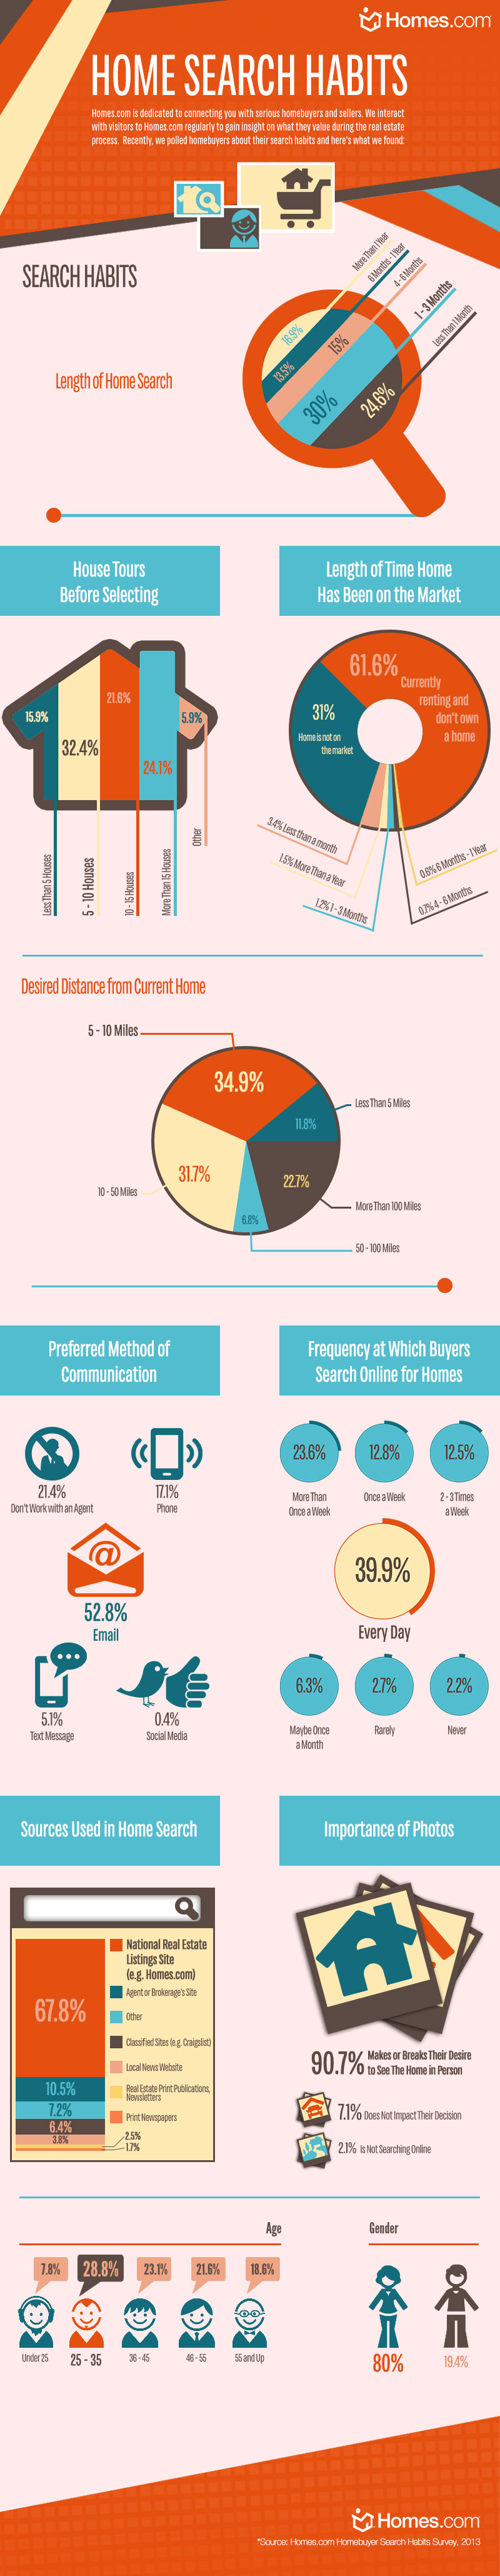 Homes.com Survey-Consumers Home Search Trends